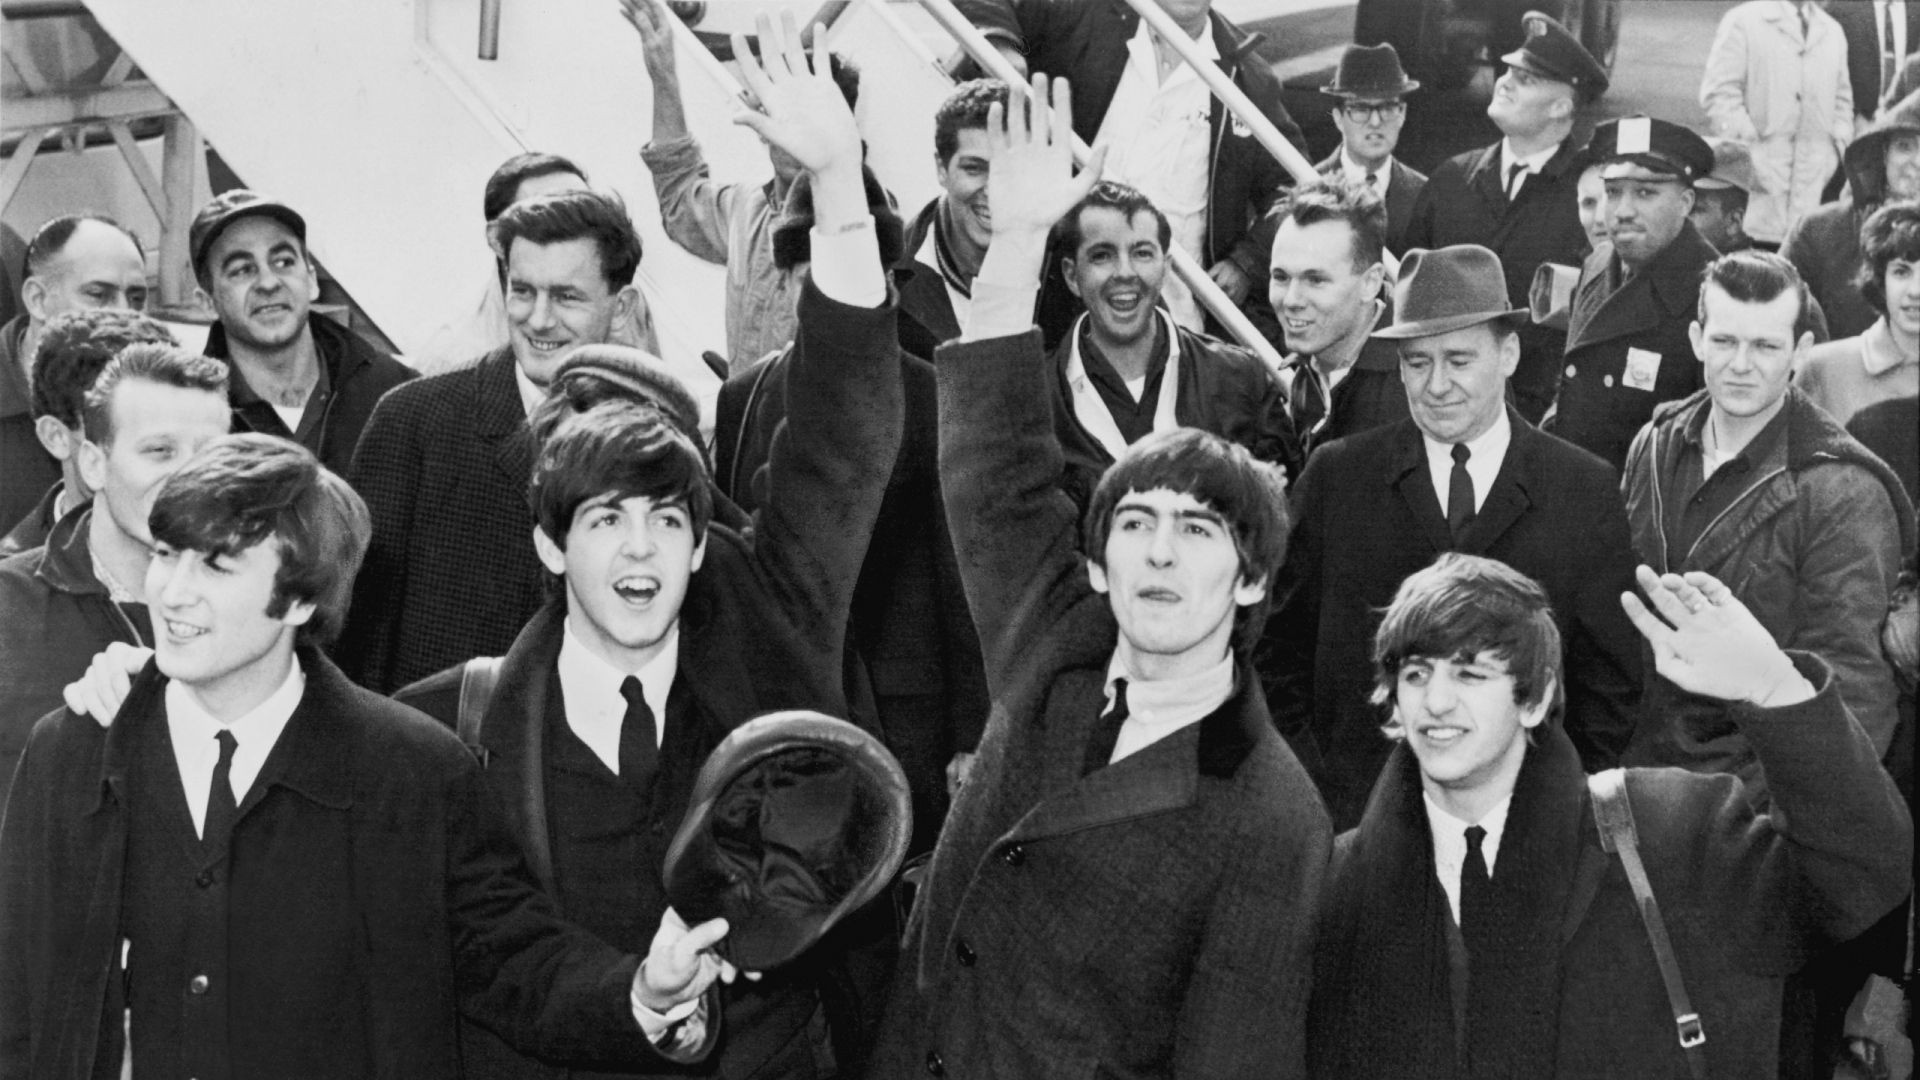 Download-1920x1080-The-beatles-Band-Members-Suits-wallpaper-wpc9204505